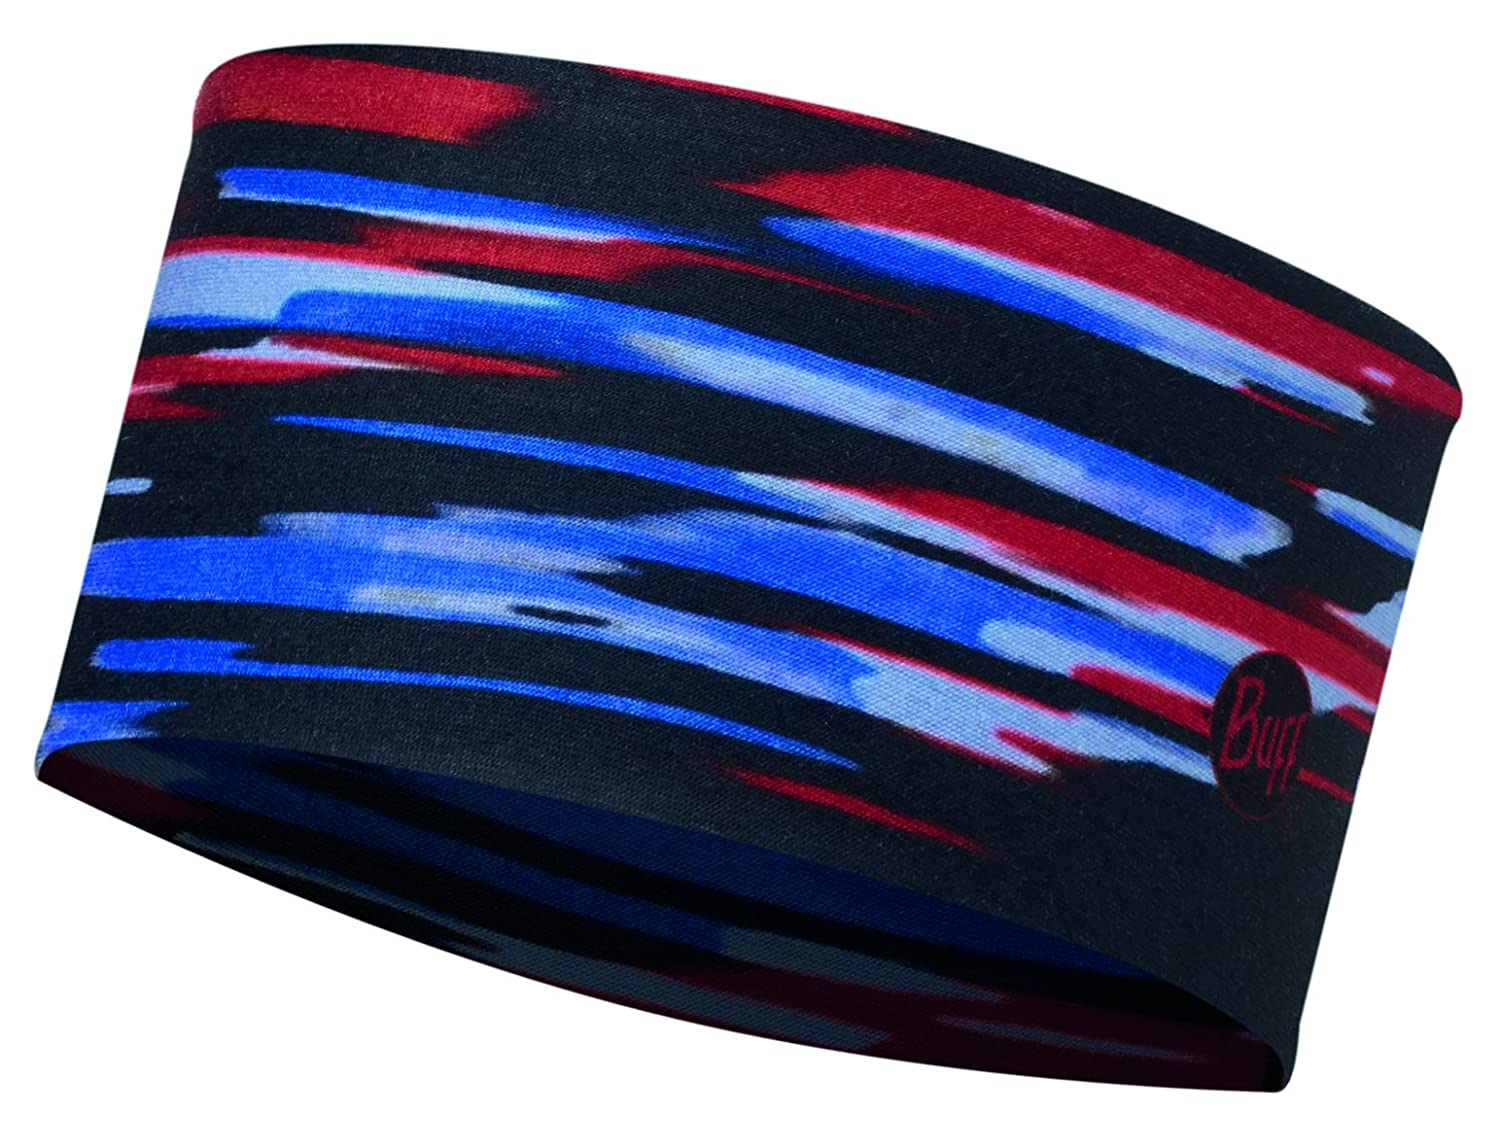 Buff Headband Coolmax (Kurzes Diadema), poliéster, talla única Color Multicolor Adulto Original Buff S.A